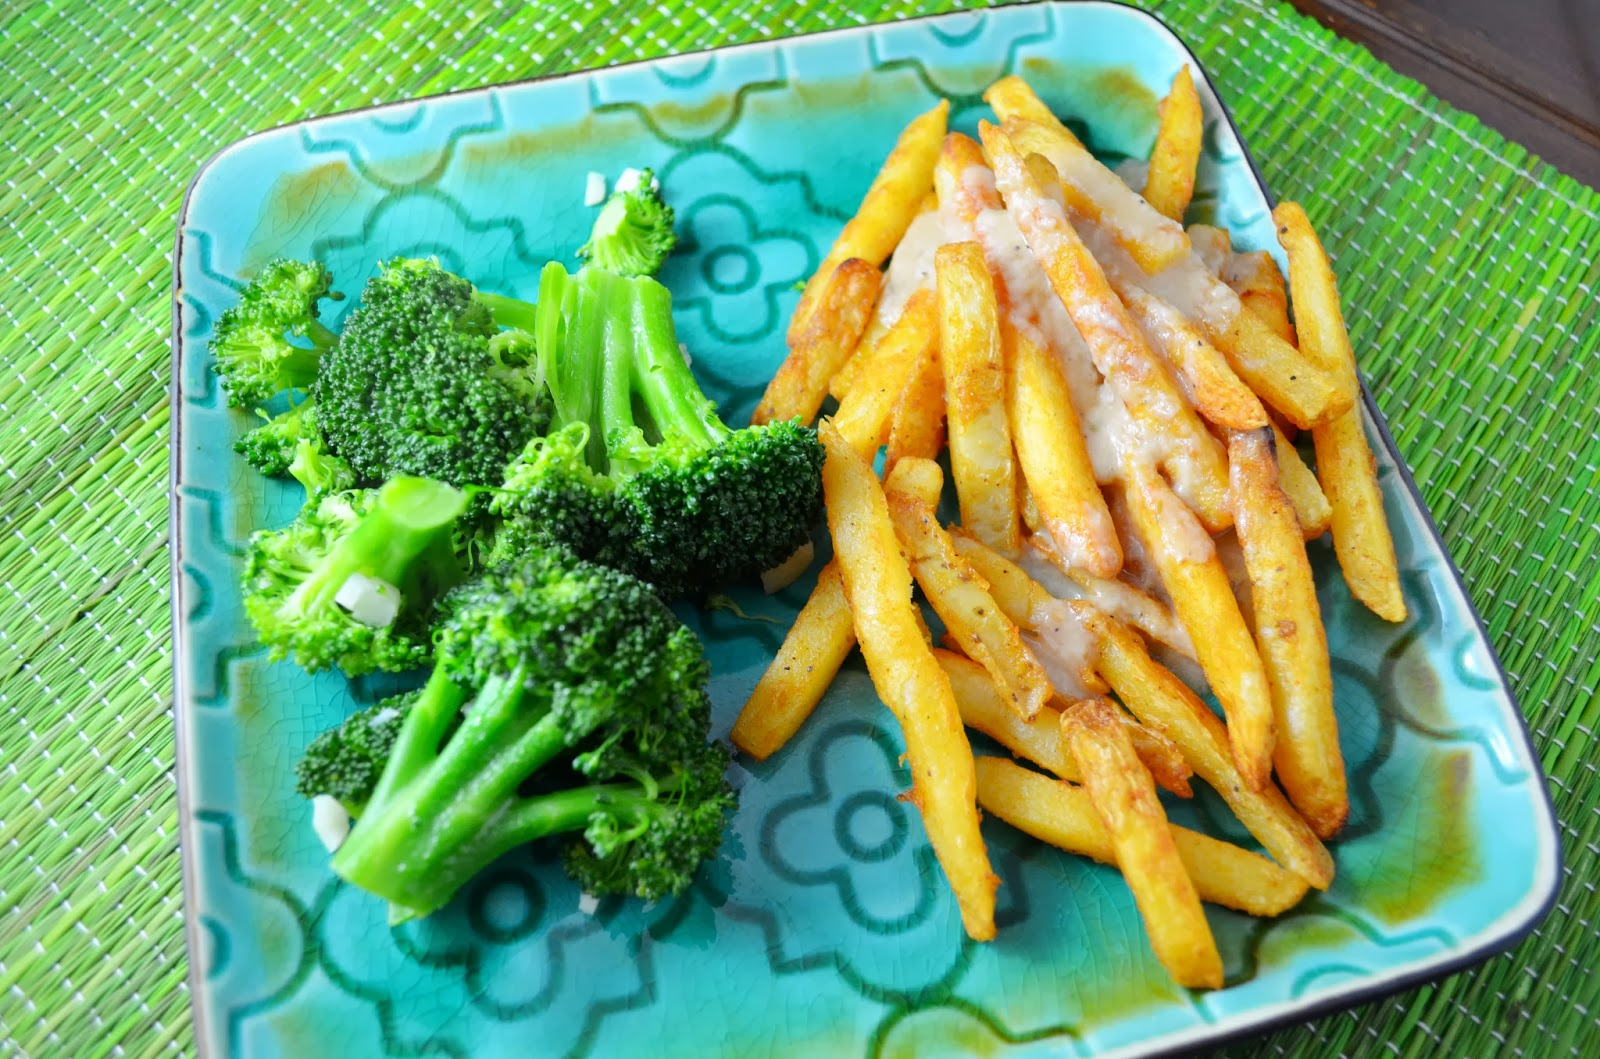 Image result for broccoli vs french fries